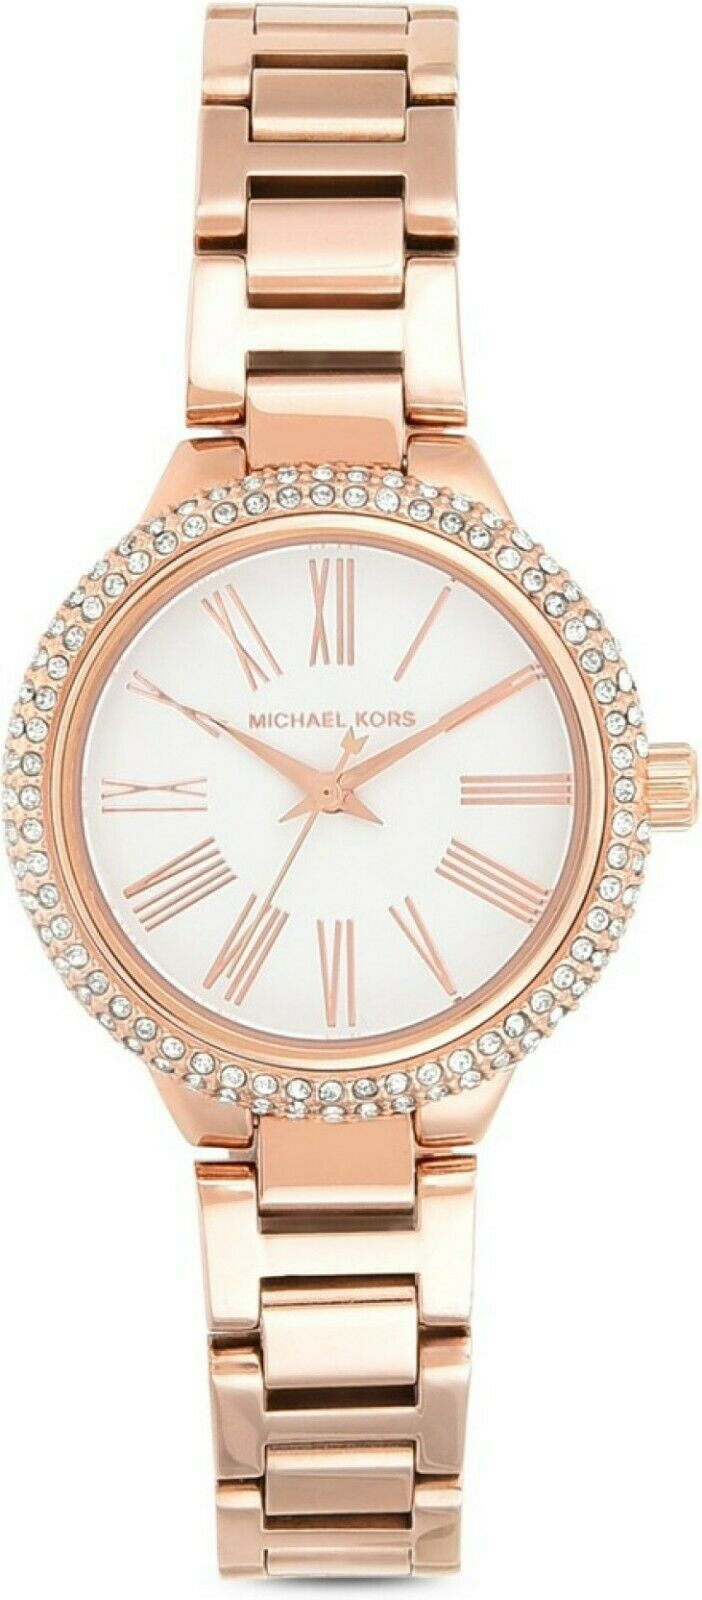 Primary image for Michael Kors Taryn Rose Gold Stainless Steel Watch Bracelet Set MK3858